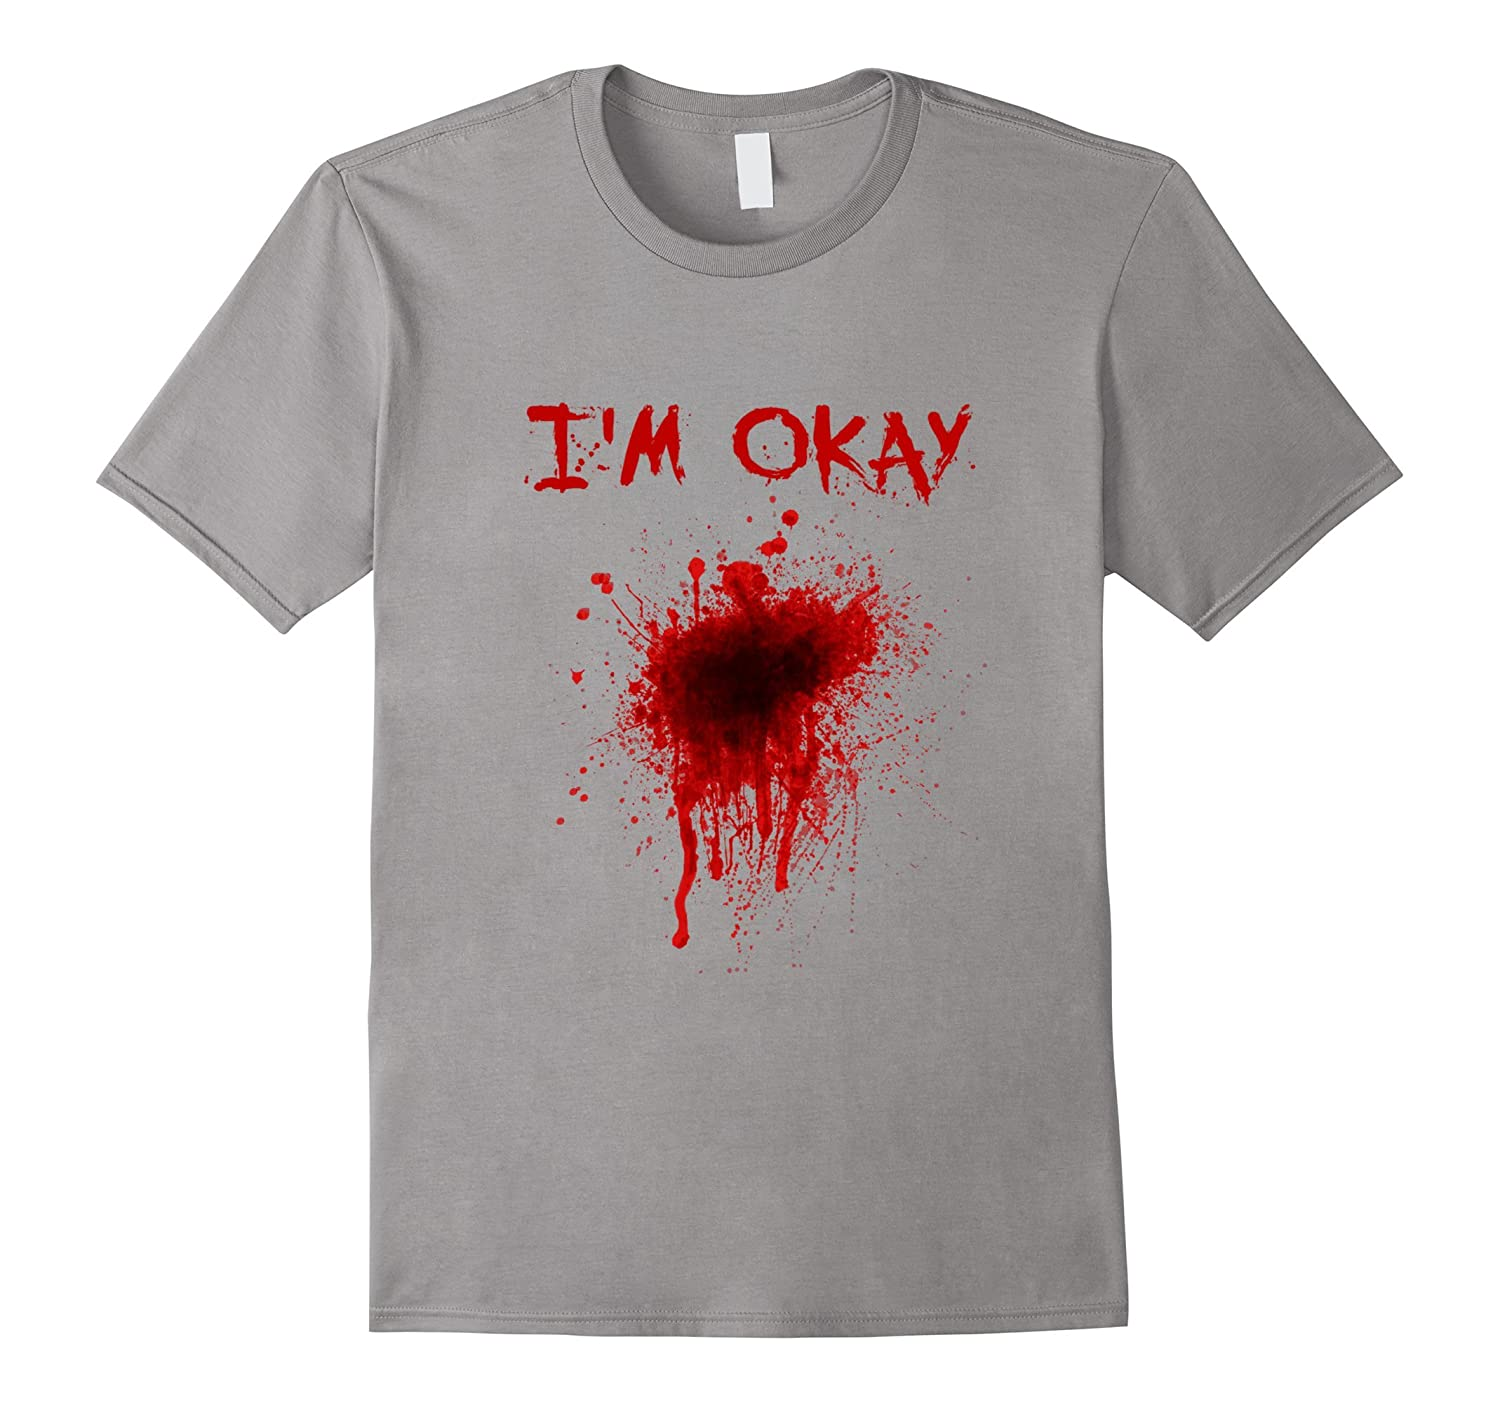 I'm Okay Bloody T-Shirt-Halloween Zombie Costume Tee-T-Shirt